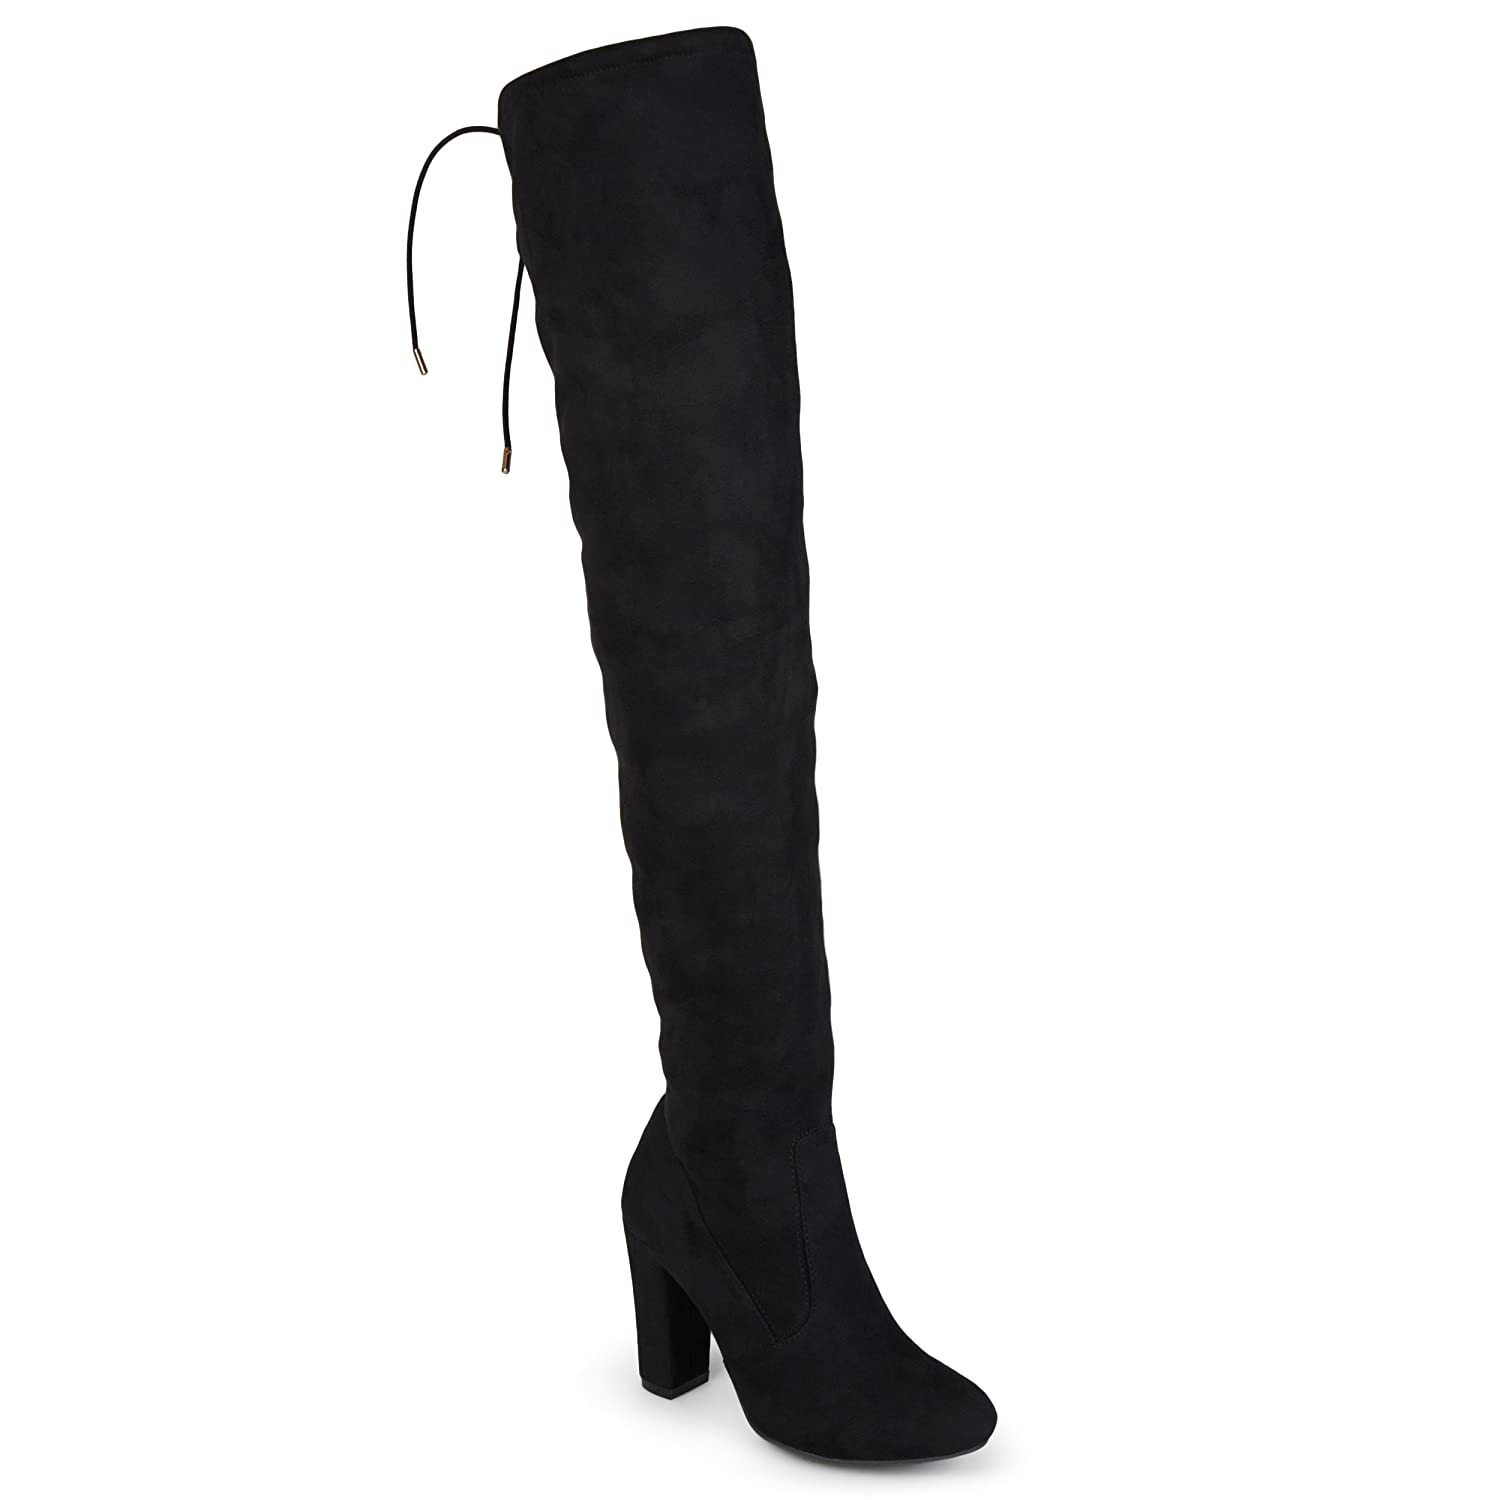 Journee Collection Womens Regular and Wide-Calf Faux Suede Over-The-Knee Boots B01I5IU72O 8 C/D US|Black